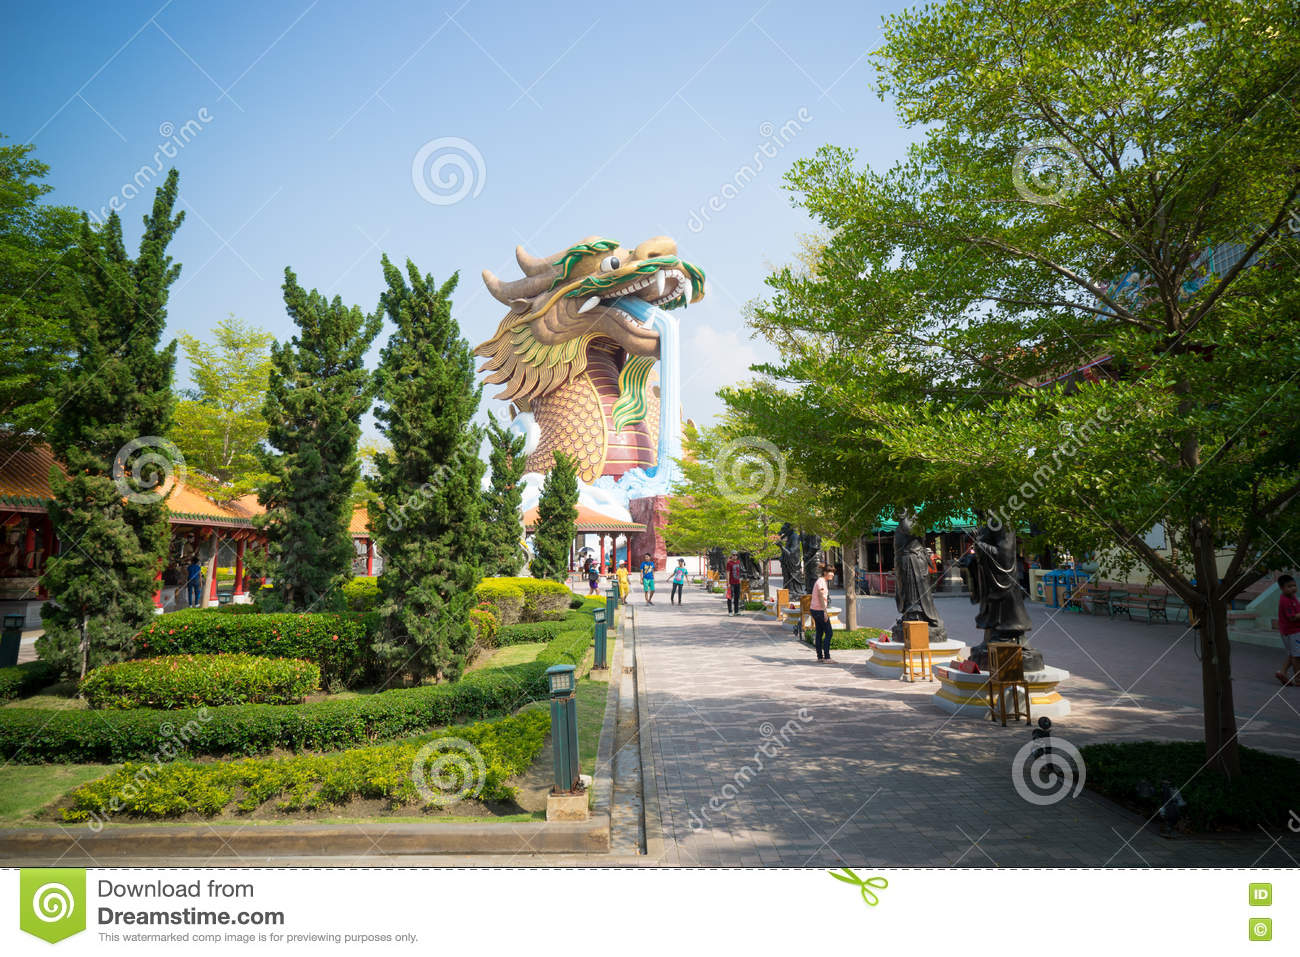 Giant Dragon Statue Giant Dragon Statue Editorial Stock Photo Image Of